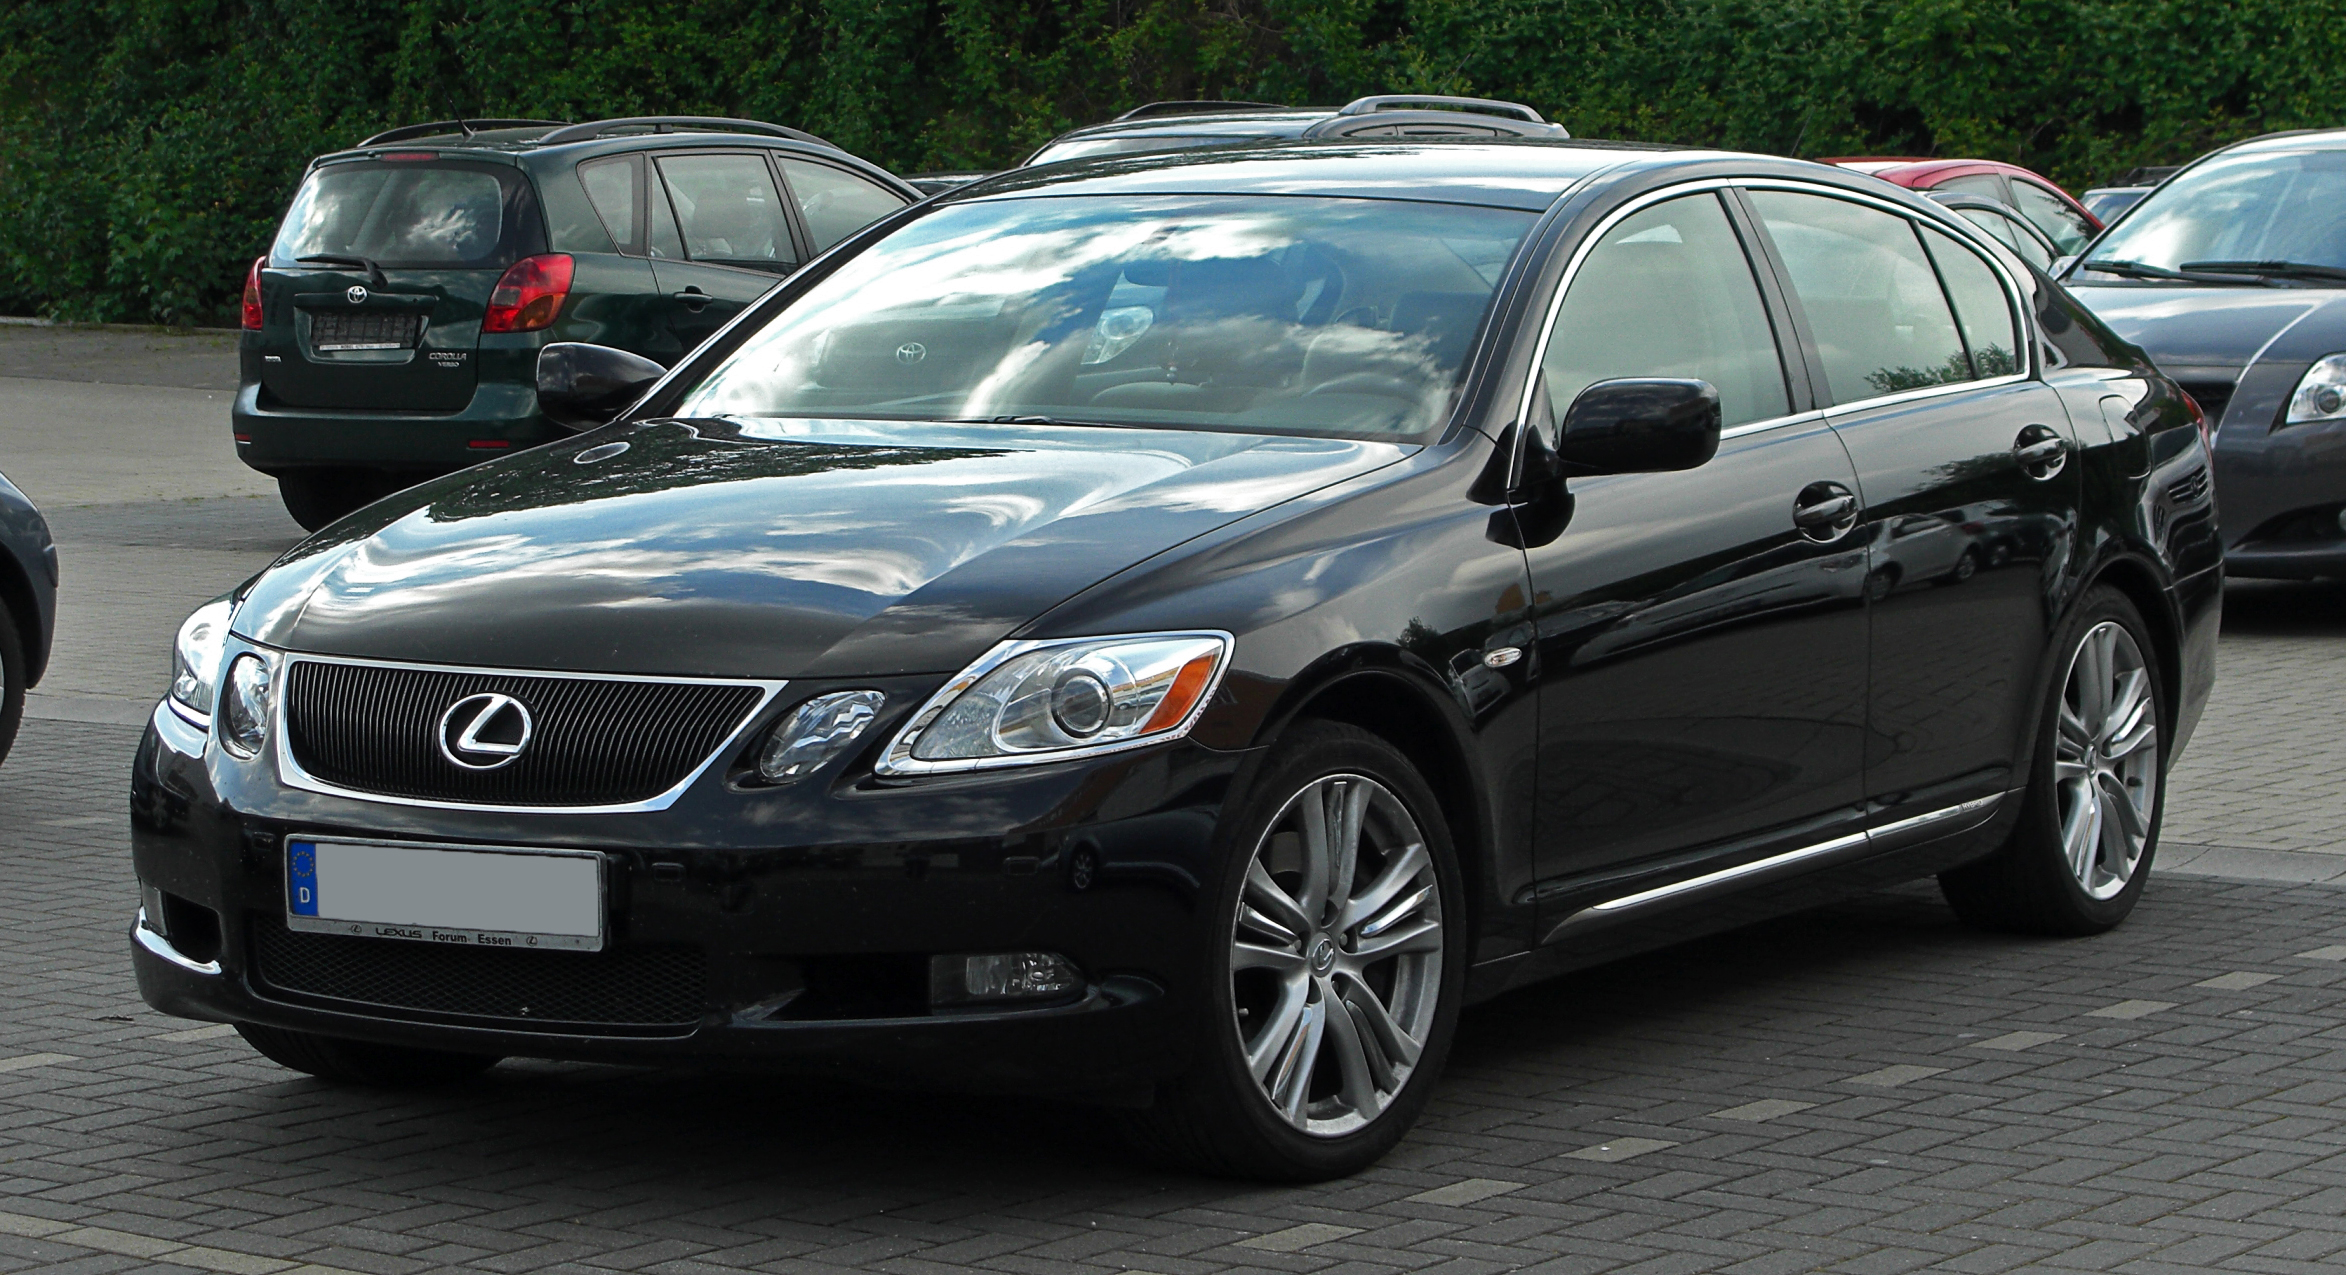 Lexus GS 450h 2011 photo - 9